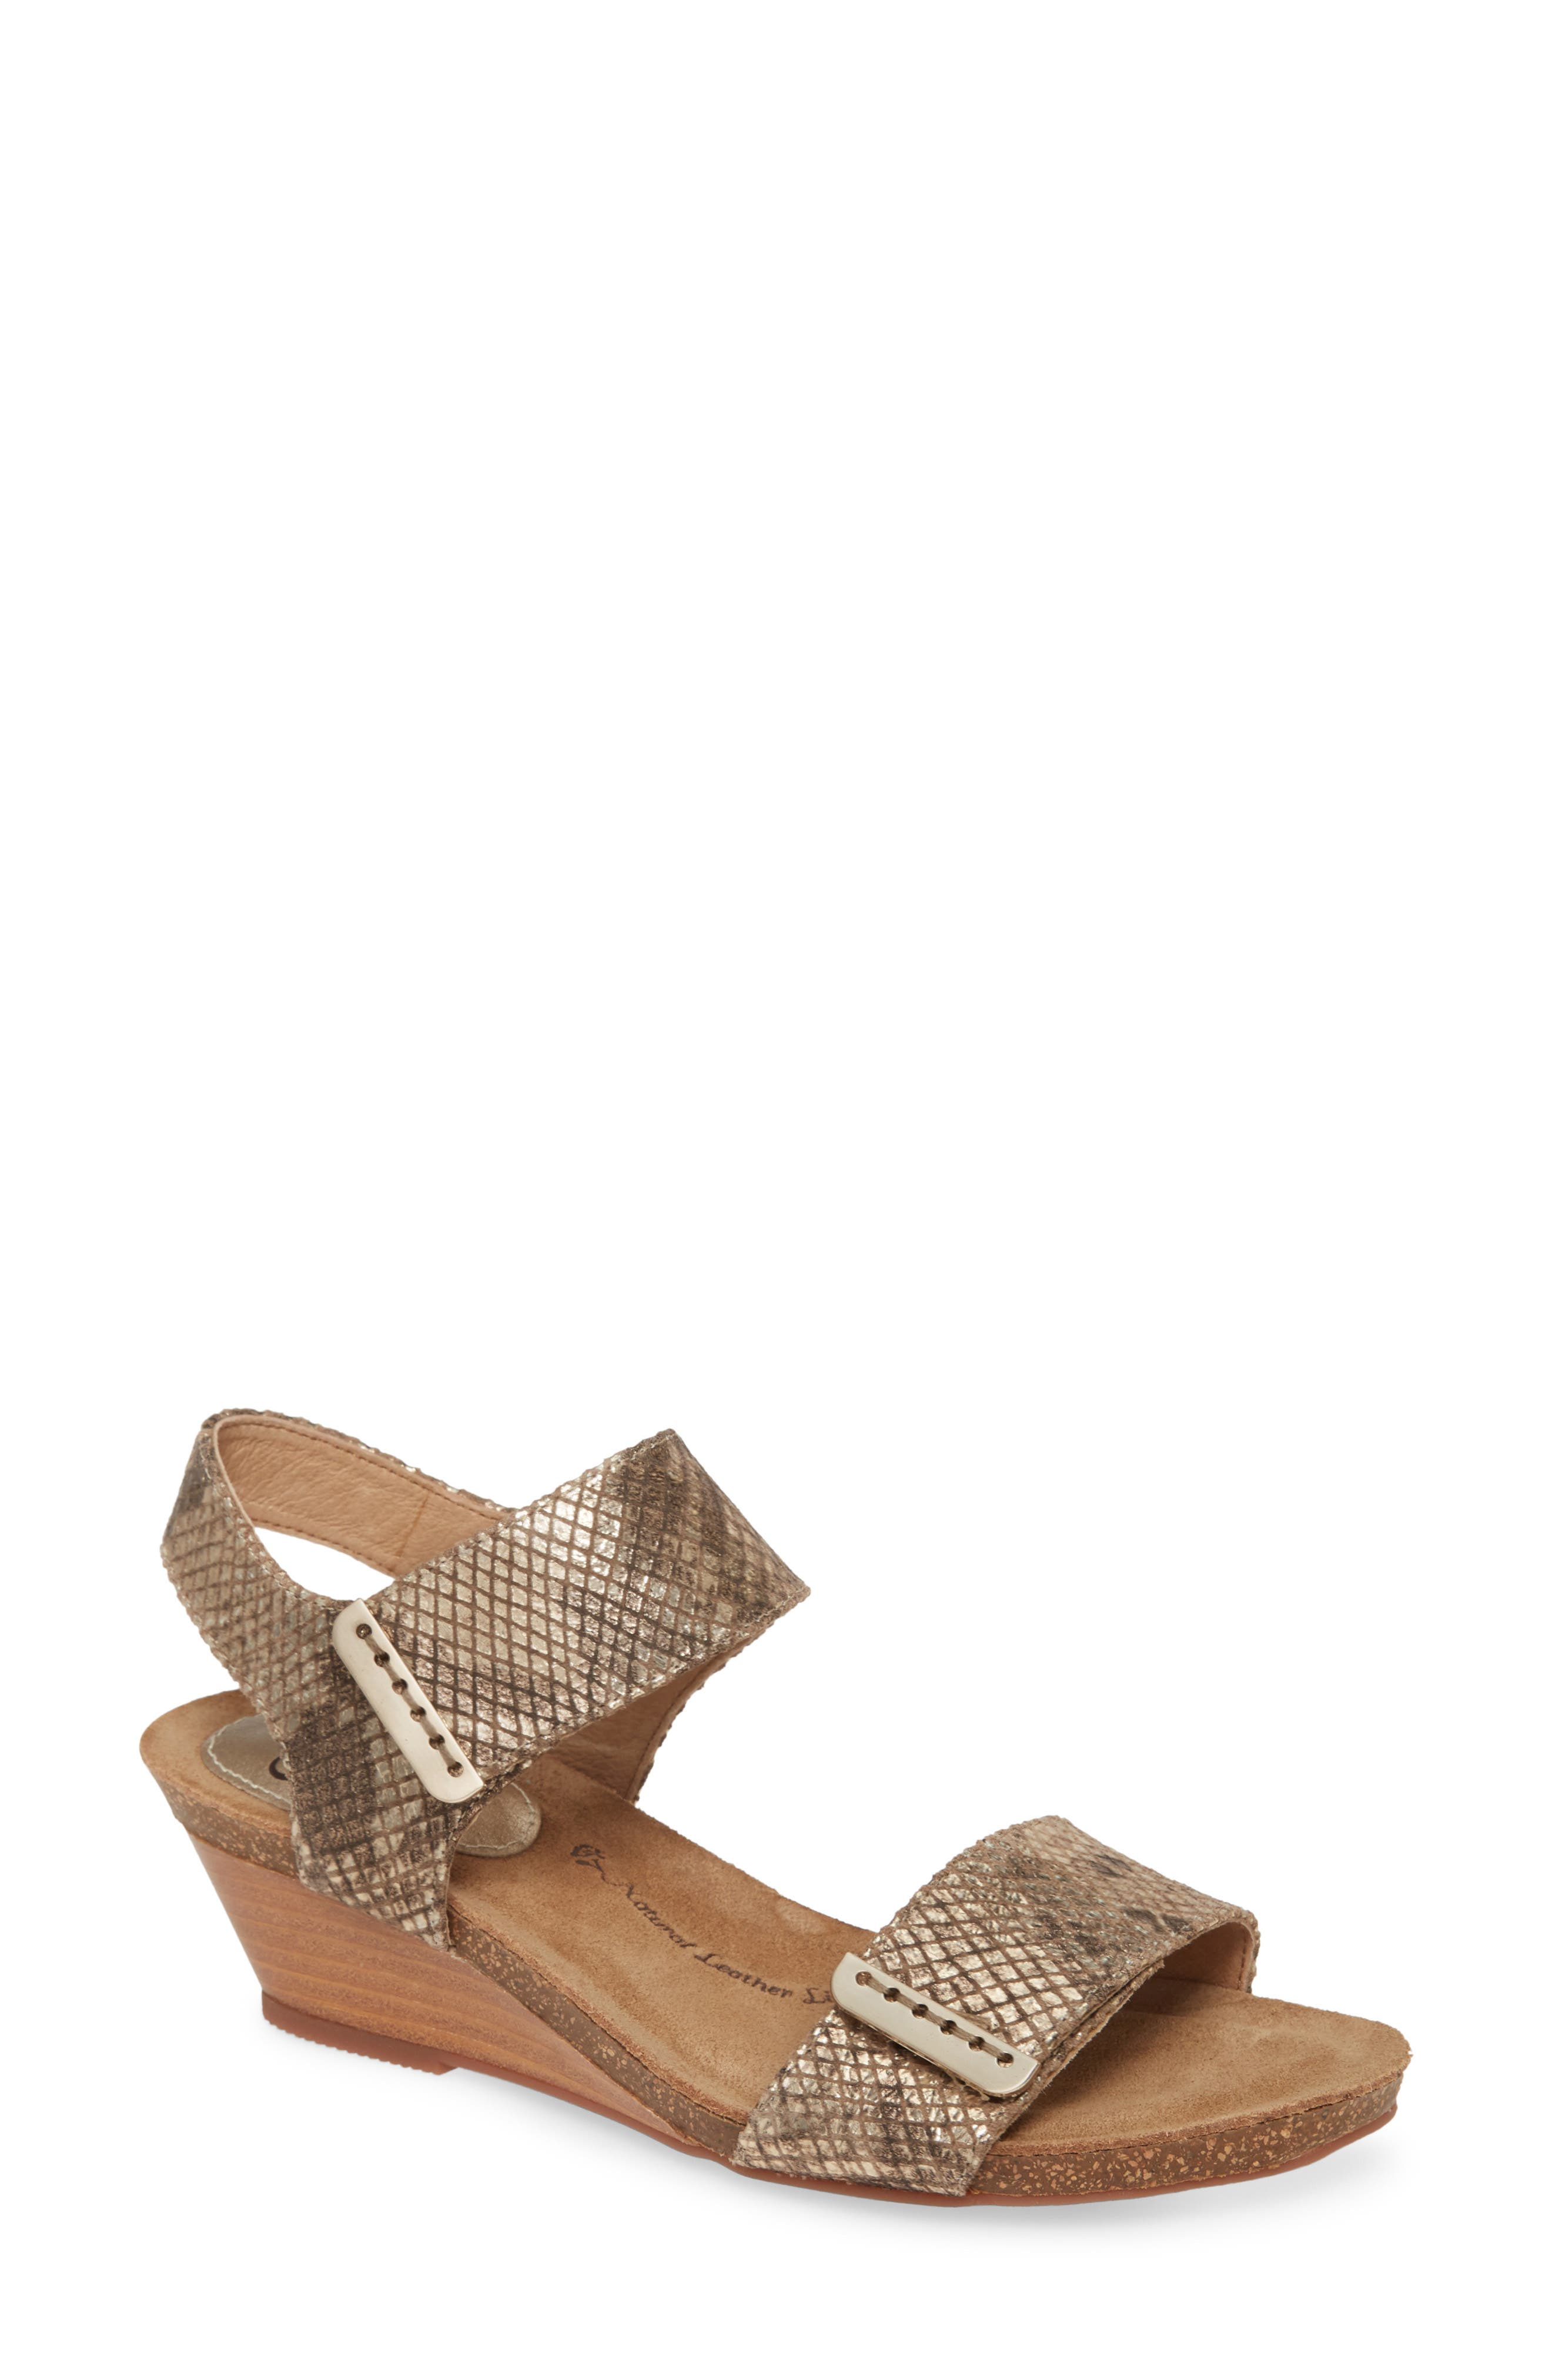 Smooth leather straps add clean, classic style to a wedge sandal grounded by a comfort-cushioned footbed. Style Name: Sofft Verdi Wedge Sandal (Women). Style Number: 5544220 2. Available in stores.